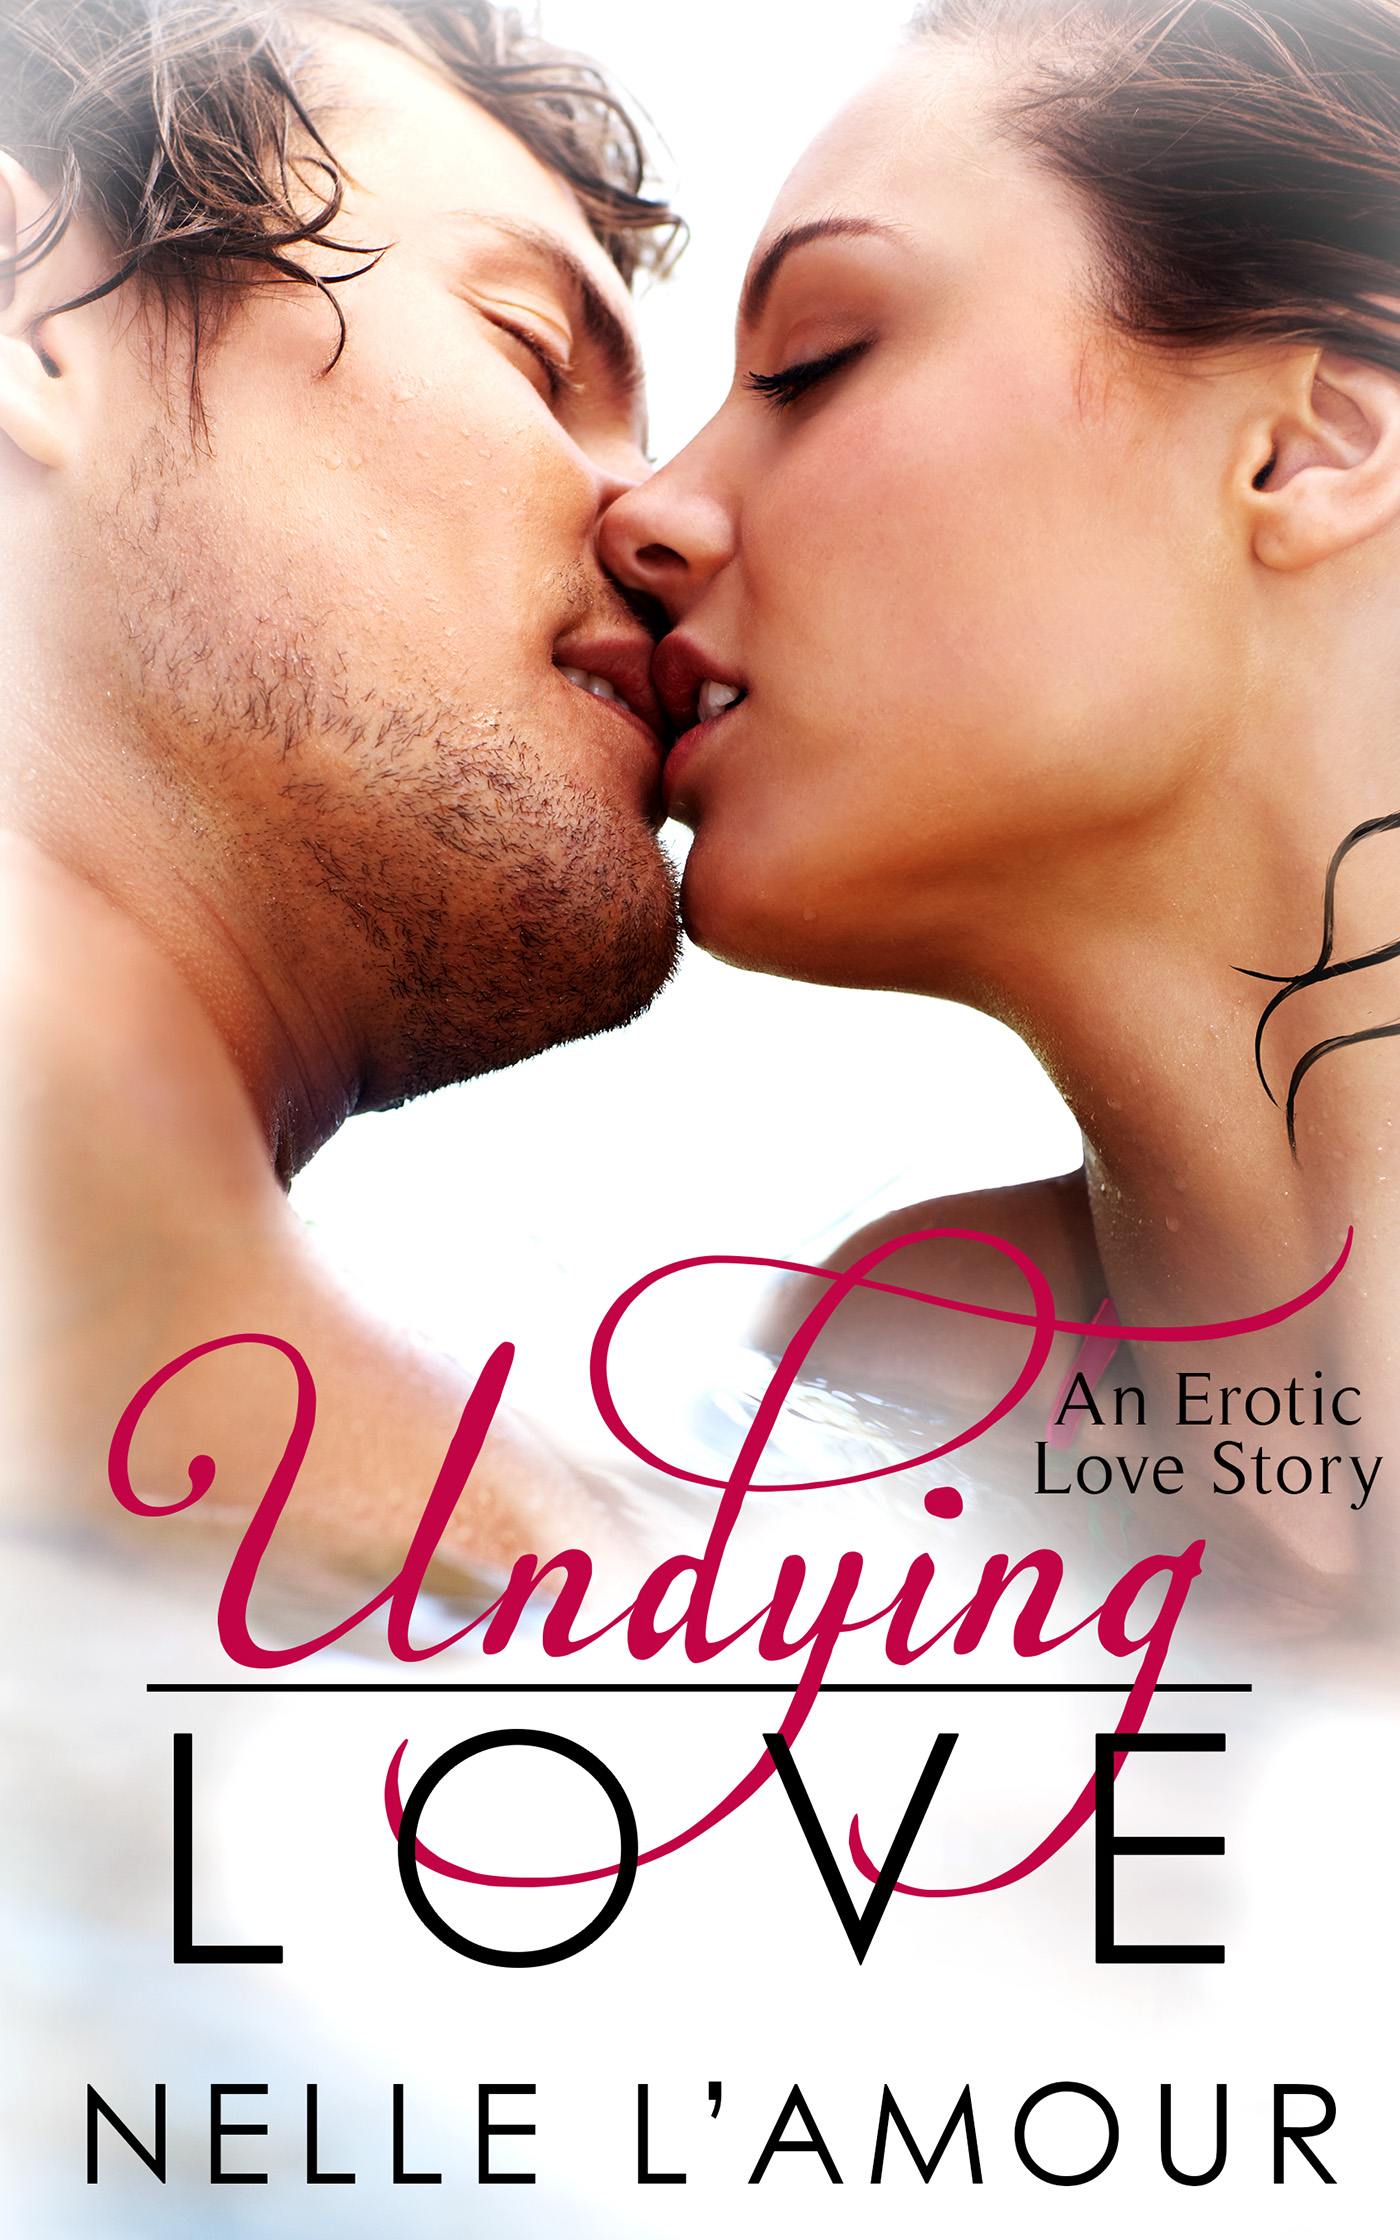 Undying Love (An Erotic Love Story, Book 1)